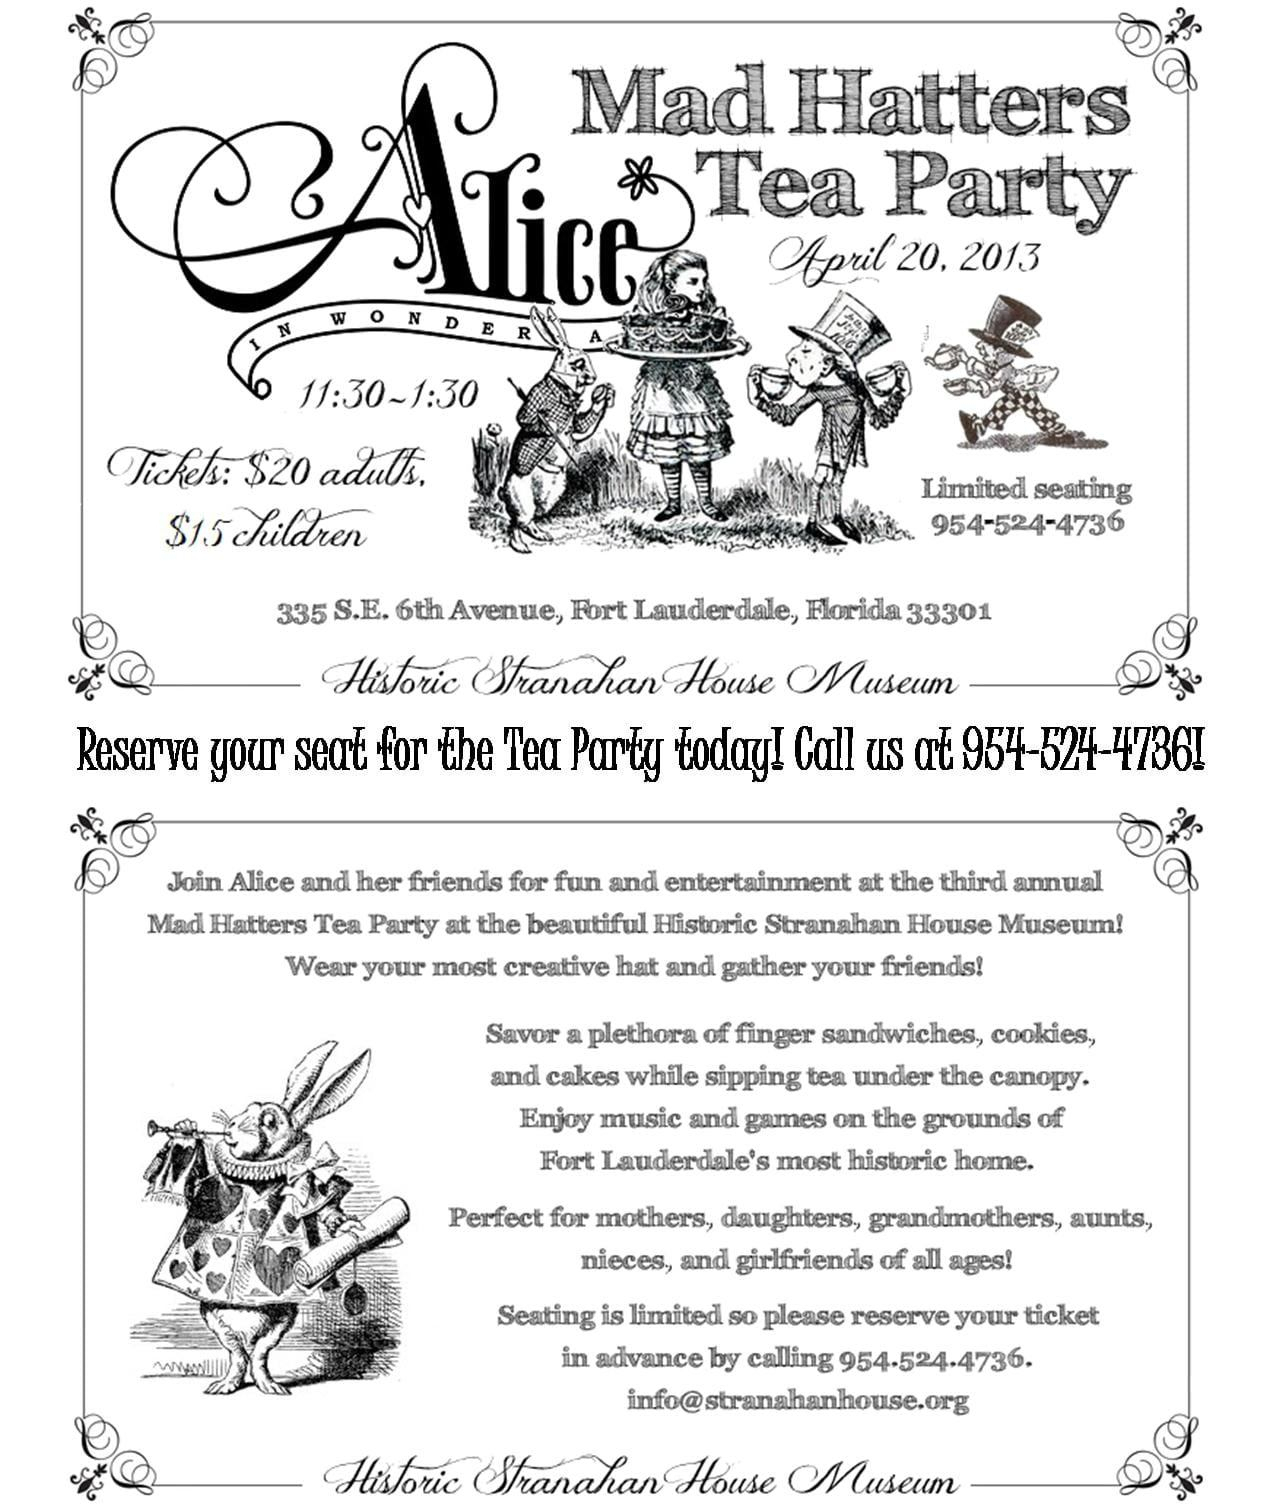 Mad Hatter Invitation Template Fresh Form For Mad Hatter Tea Party - Mad Hatter Tea Party Invitations Free Printable